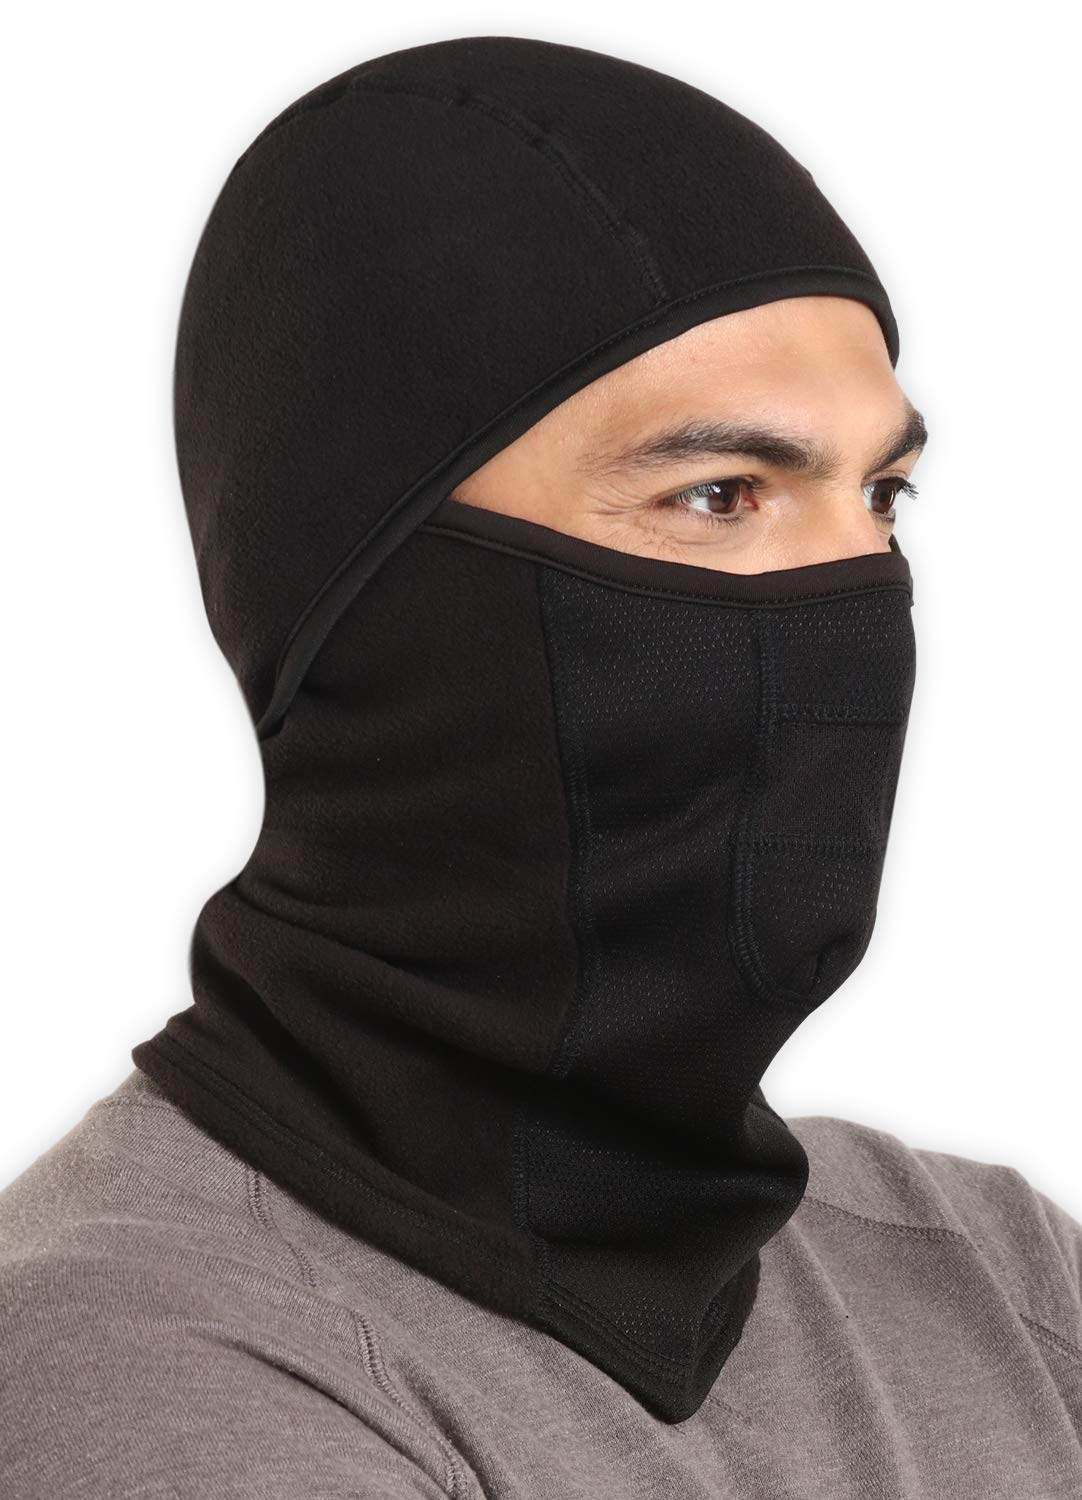 Balaclava - Windproof Ski Mask - Extreme Cold Weather Face Mask for Working, Skiing, Snowboarding & Winter Sports - Protective Head Gear for Those Who Work - Ultimate Protection from the Elements